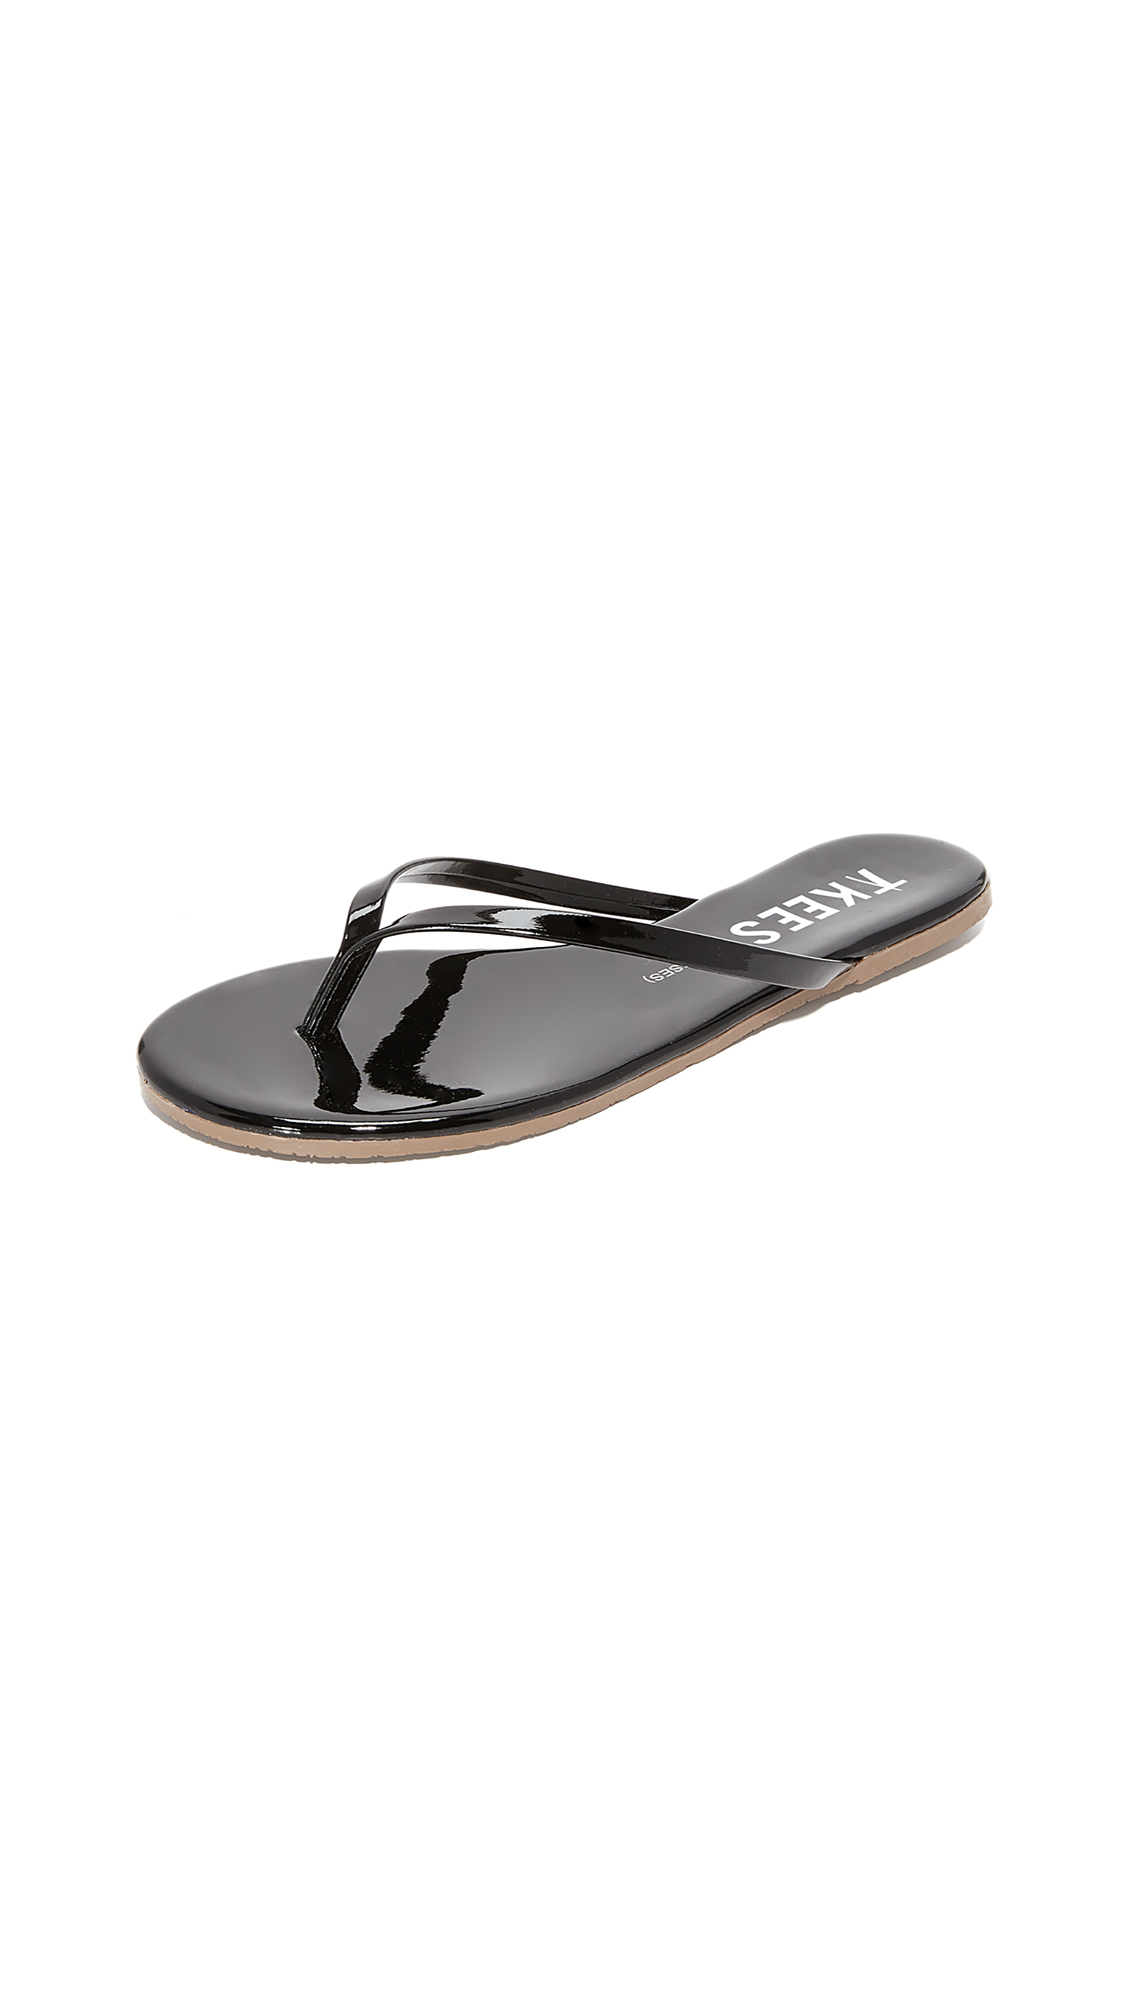 TKEES Glosses Flip Flops - Licorice